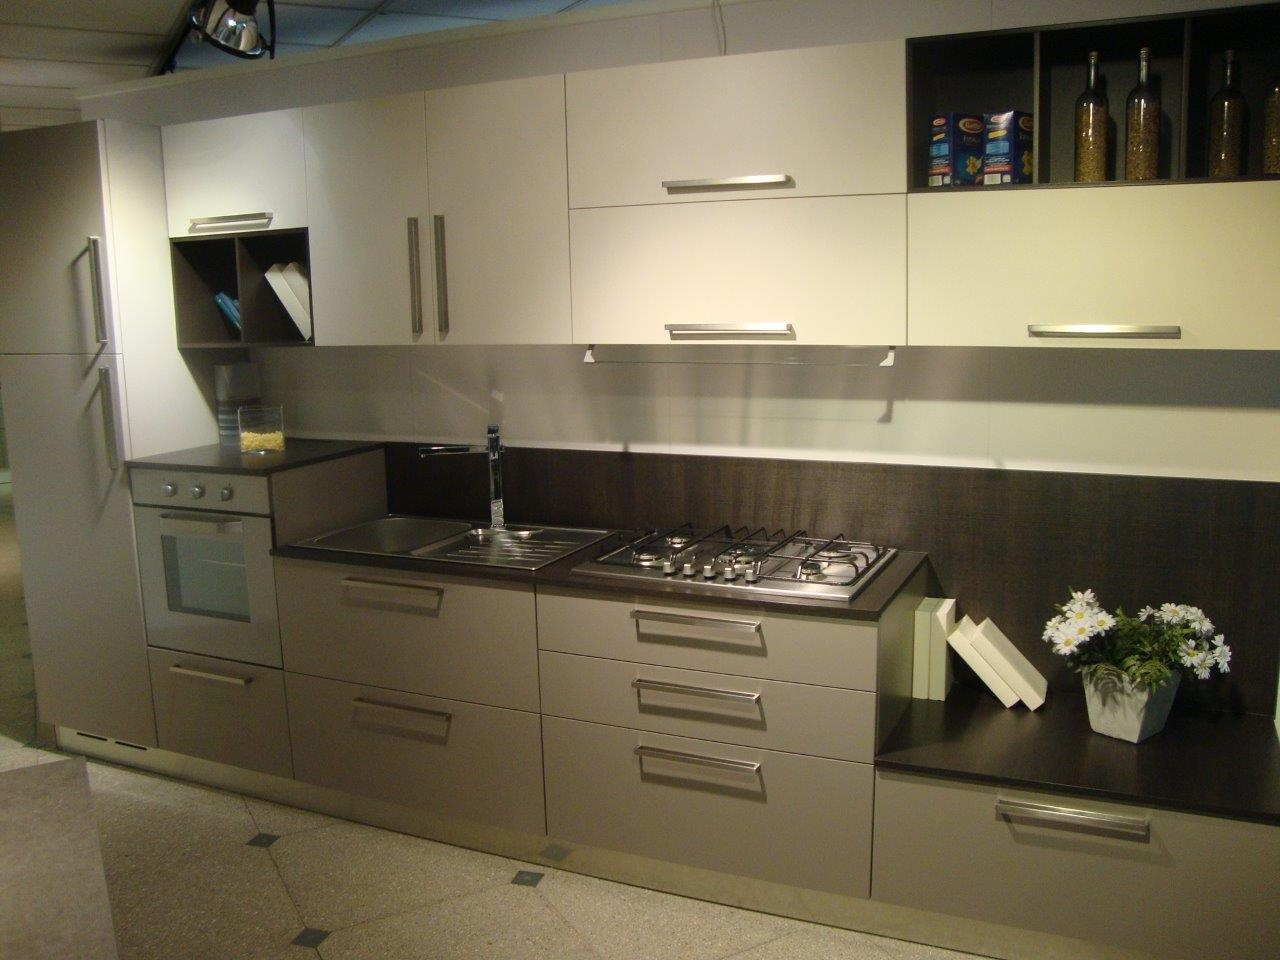 Arredo Cucine Pictures To Pin On Pinterest #8F783C 1280 960 Veneta Cucine O Arredo Tre